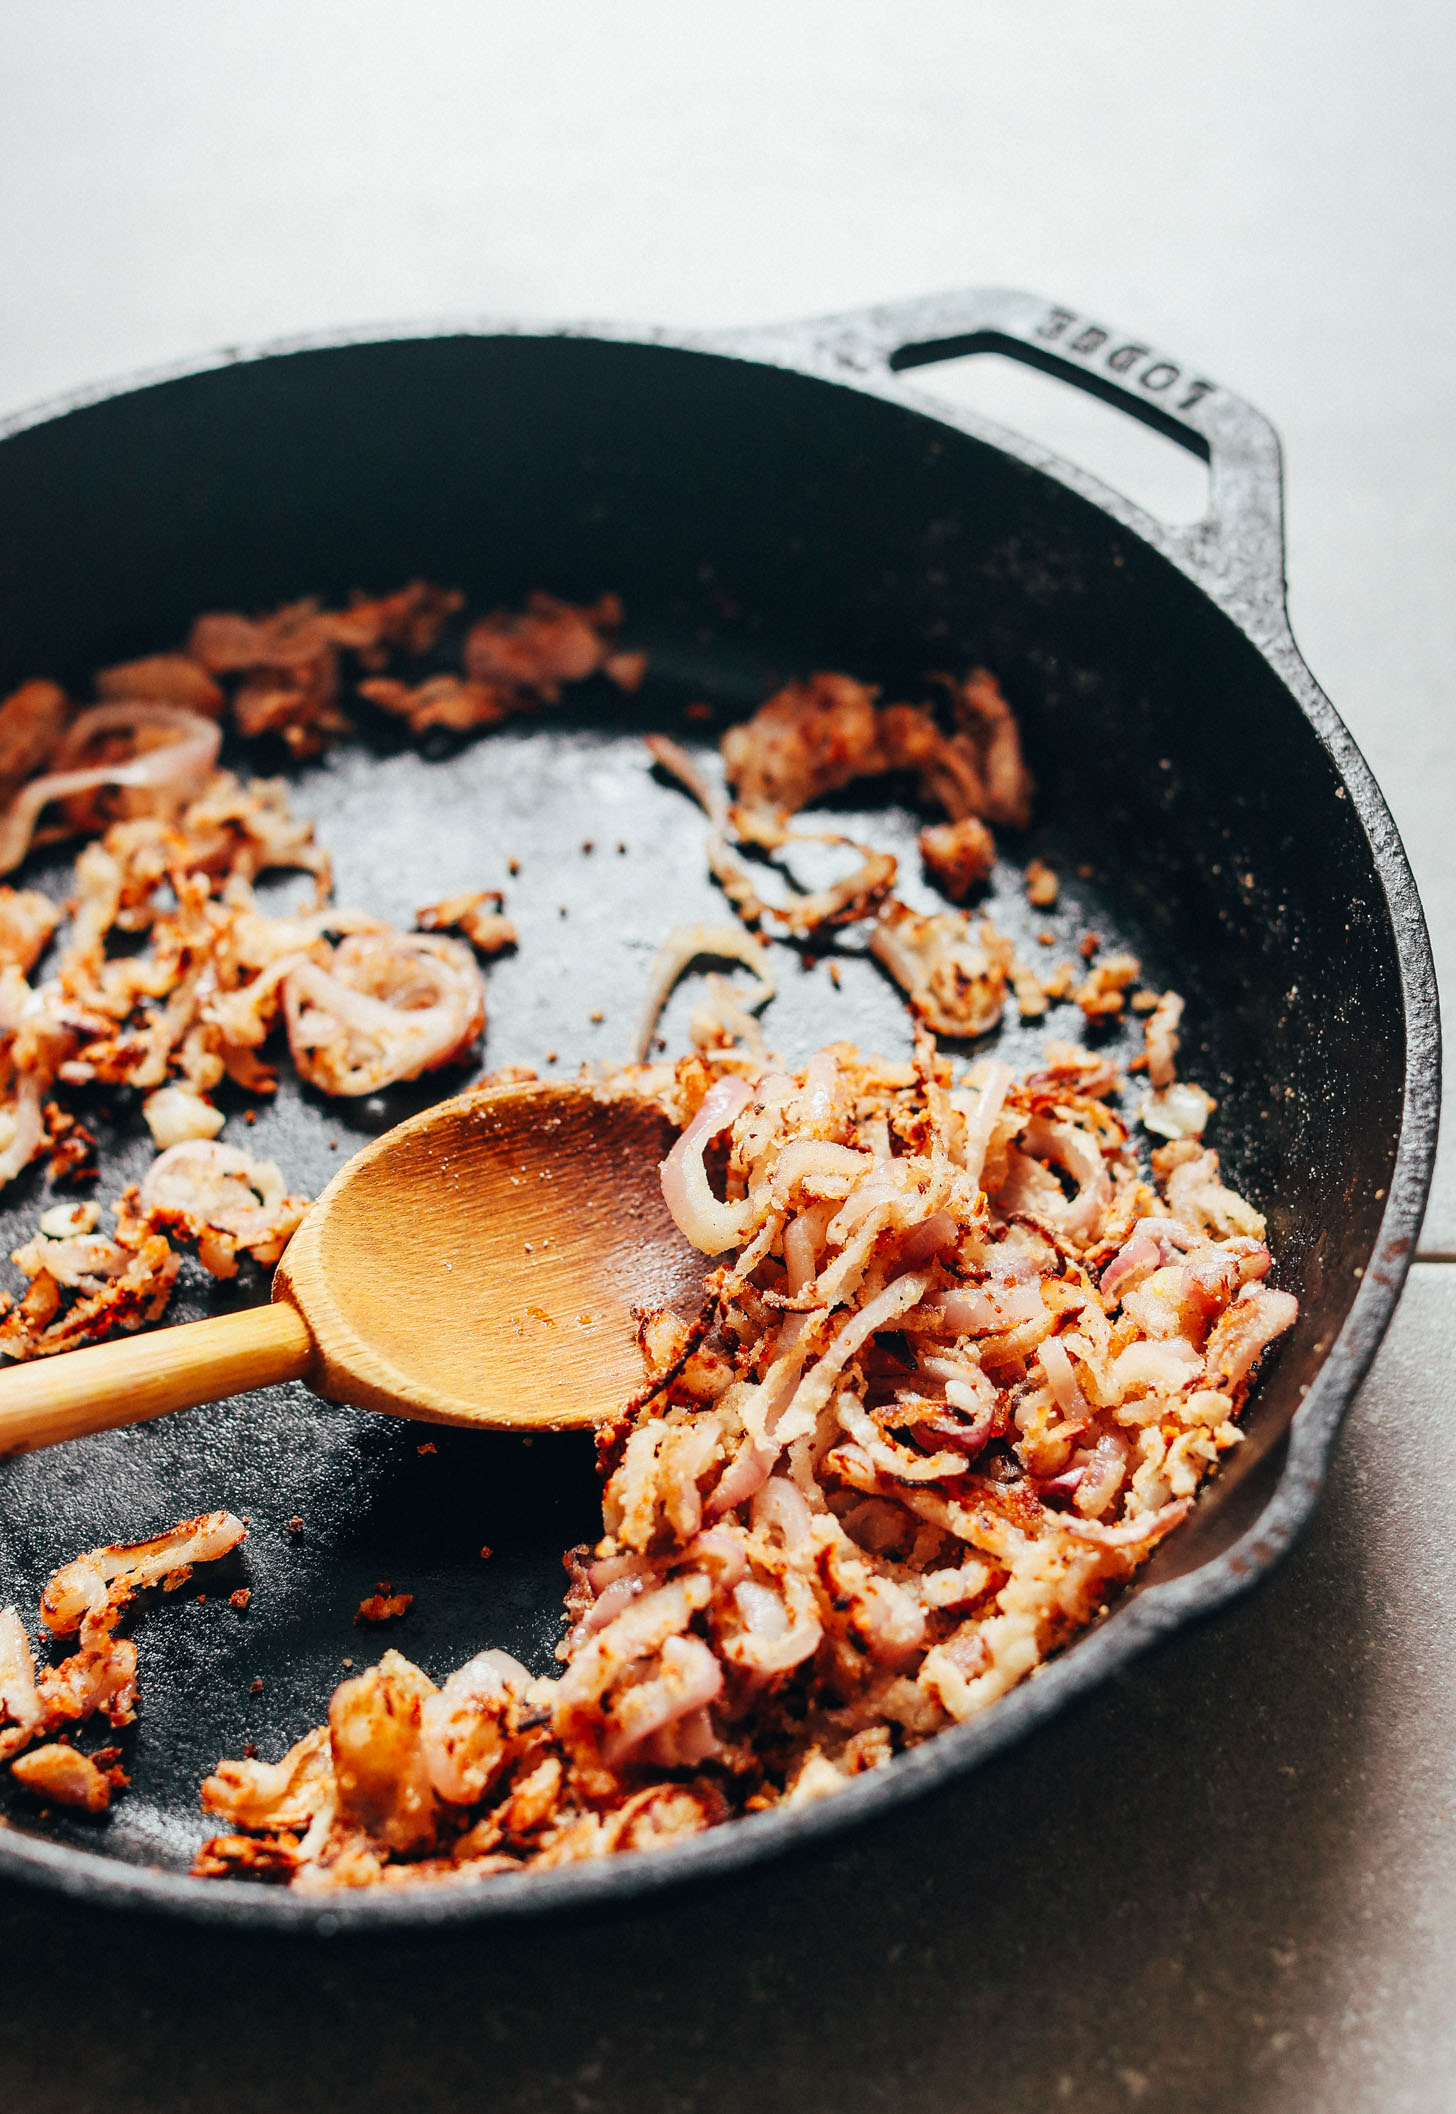 Batch of crispy shallots cooking in a cast-iron skillet